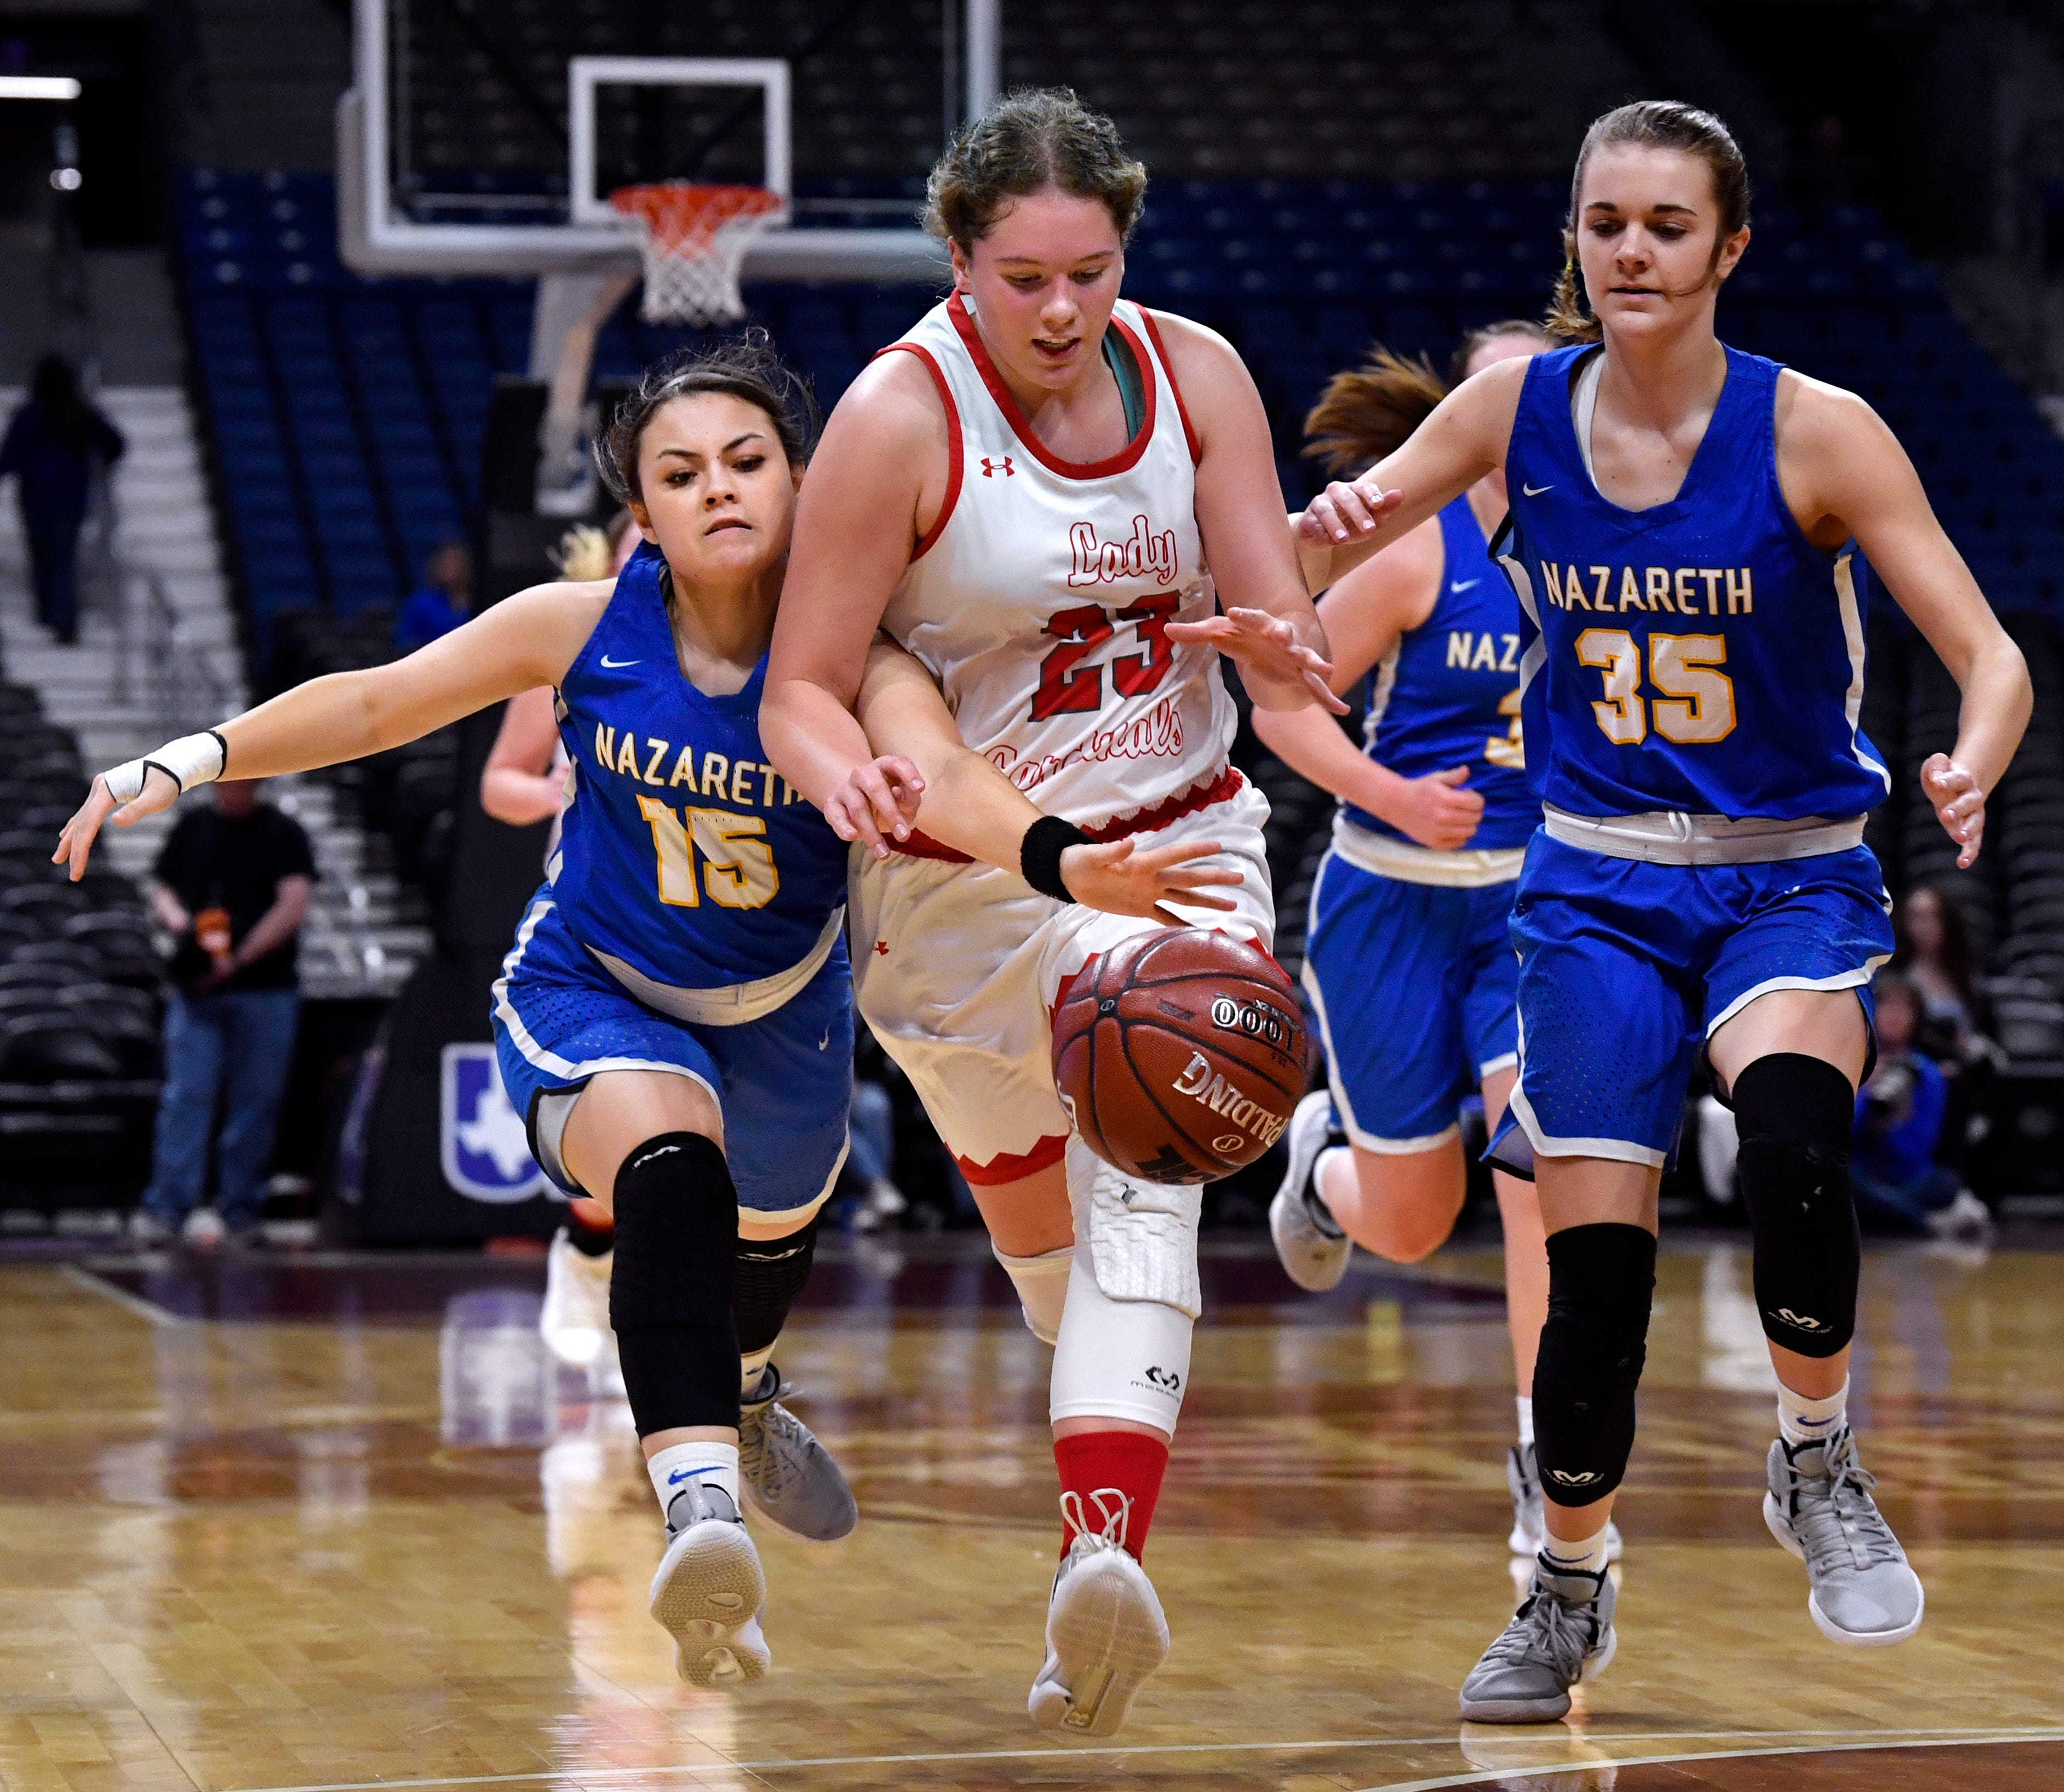 Nazareth guard Lexis Nieves tries to steal the ball from Hermleigh forward Makia Gonzales during Thursday's UIL Class 1A girls state basketball semifinal at the Alamodome in San Antonio Feb. 28, 2019.